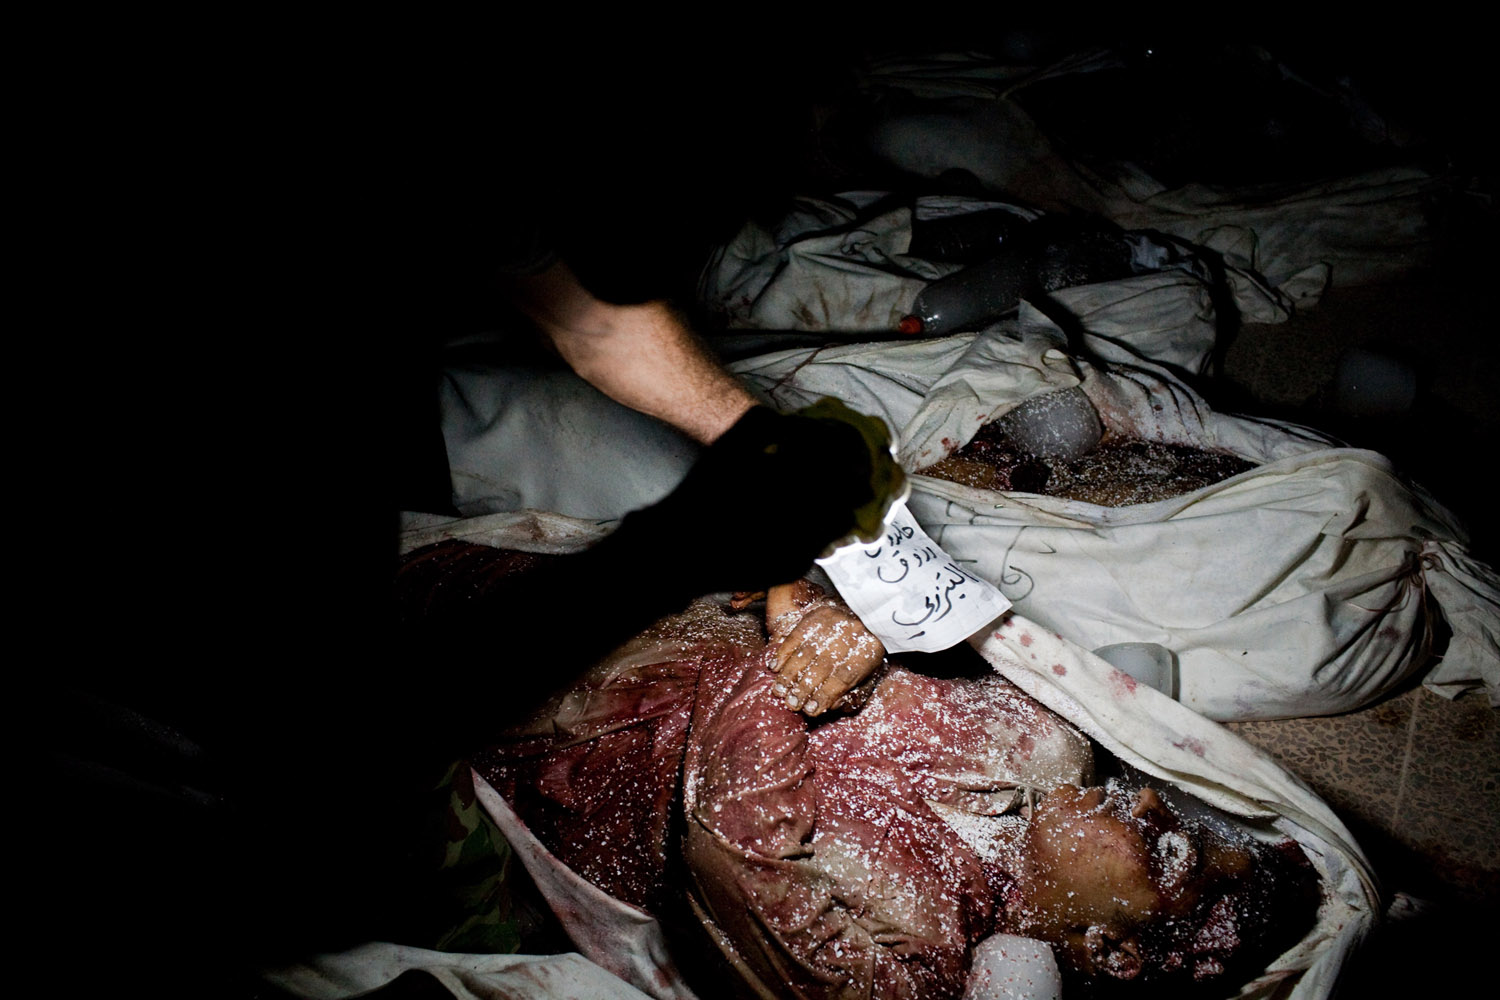 Bodies wrapped in white sheets are laid out on the ground in a mosque in Maarat Al Noman, Syria, after a day of heavy shelling by Syrian Army forces, June 9, 2012.